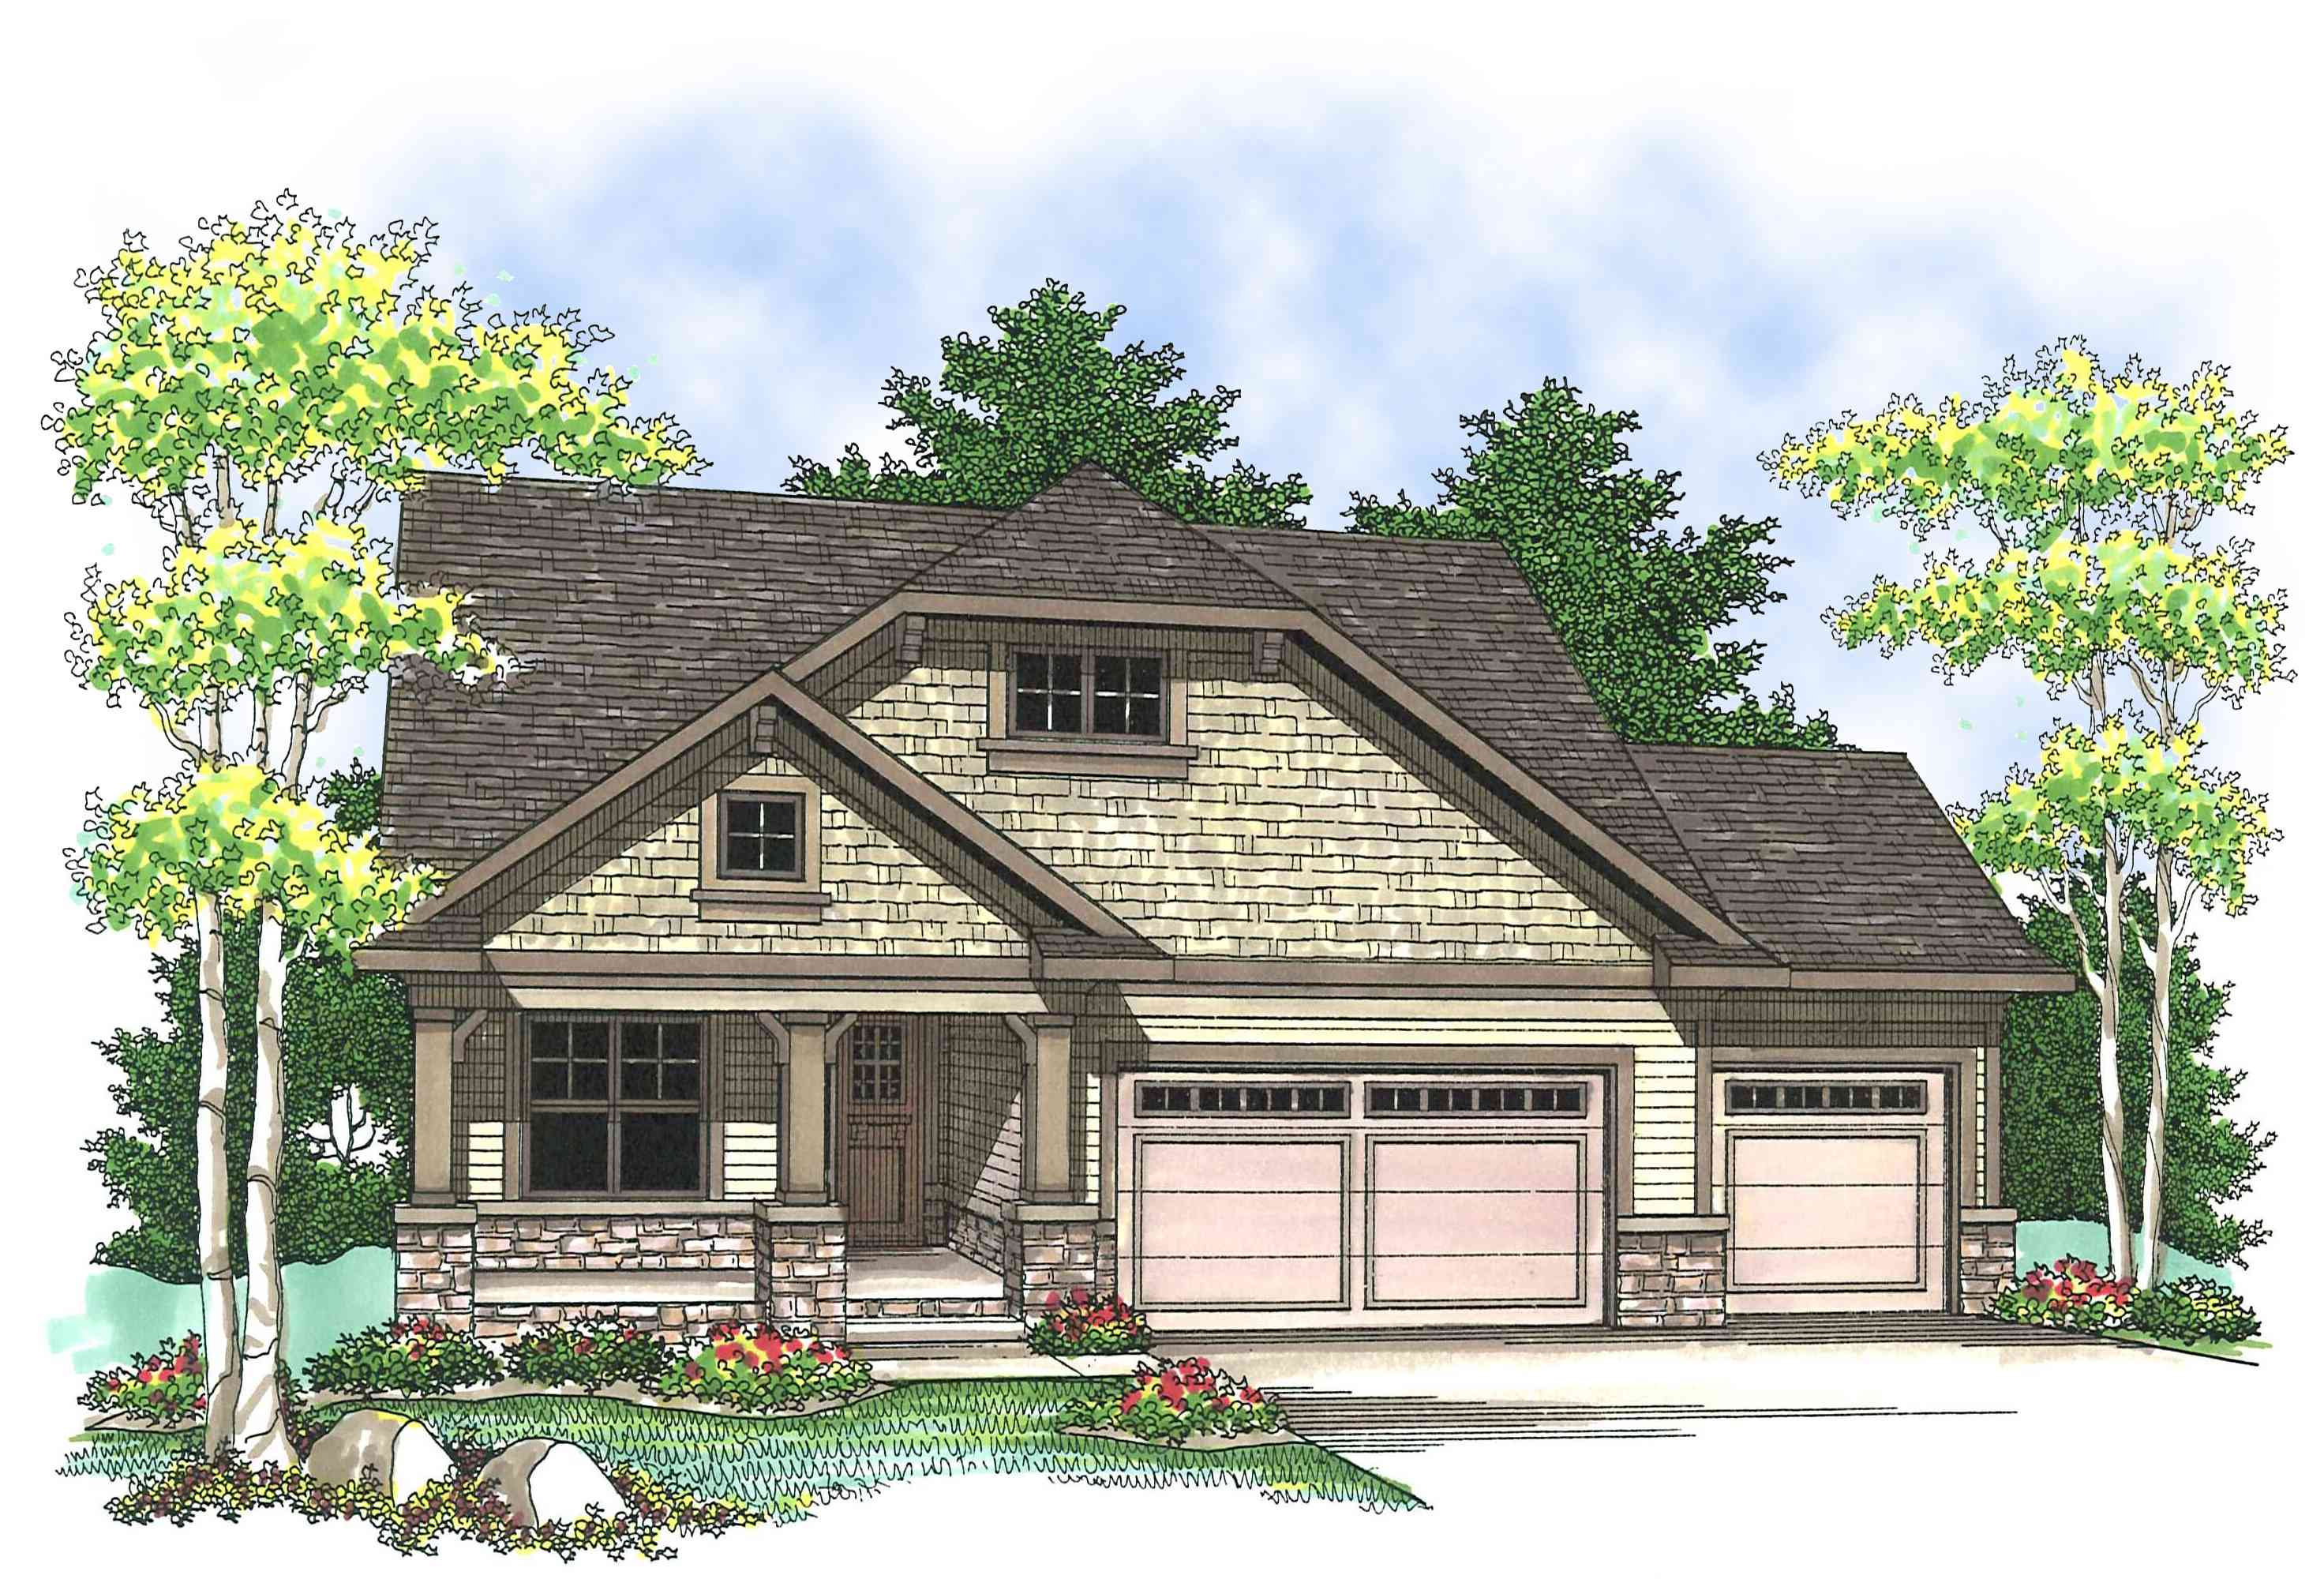 Ranch House Floor Plans with Garage